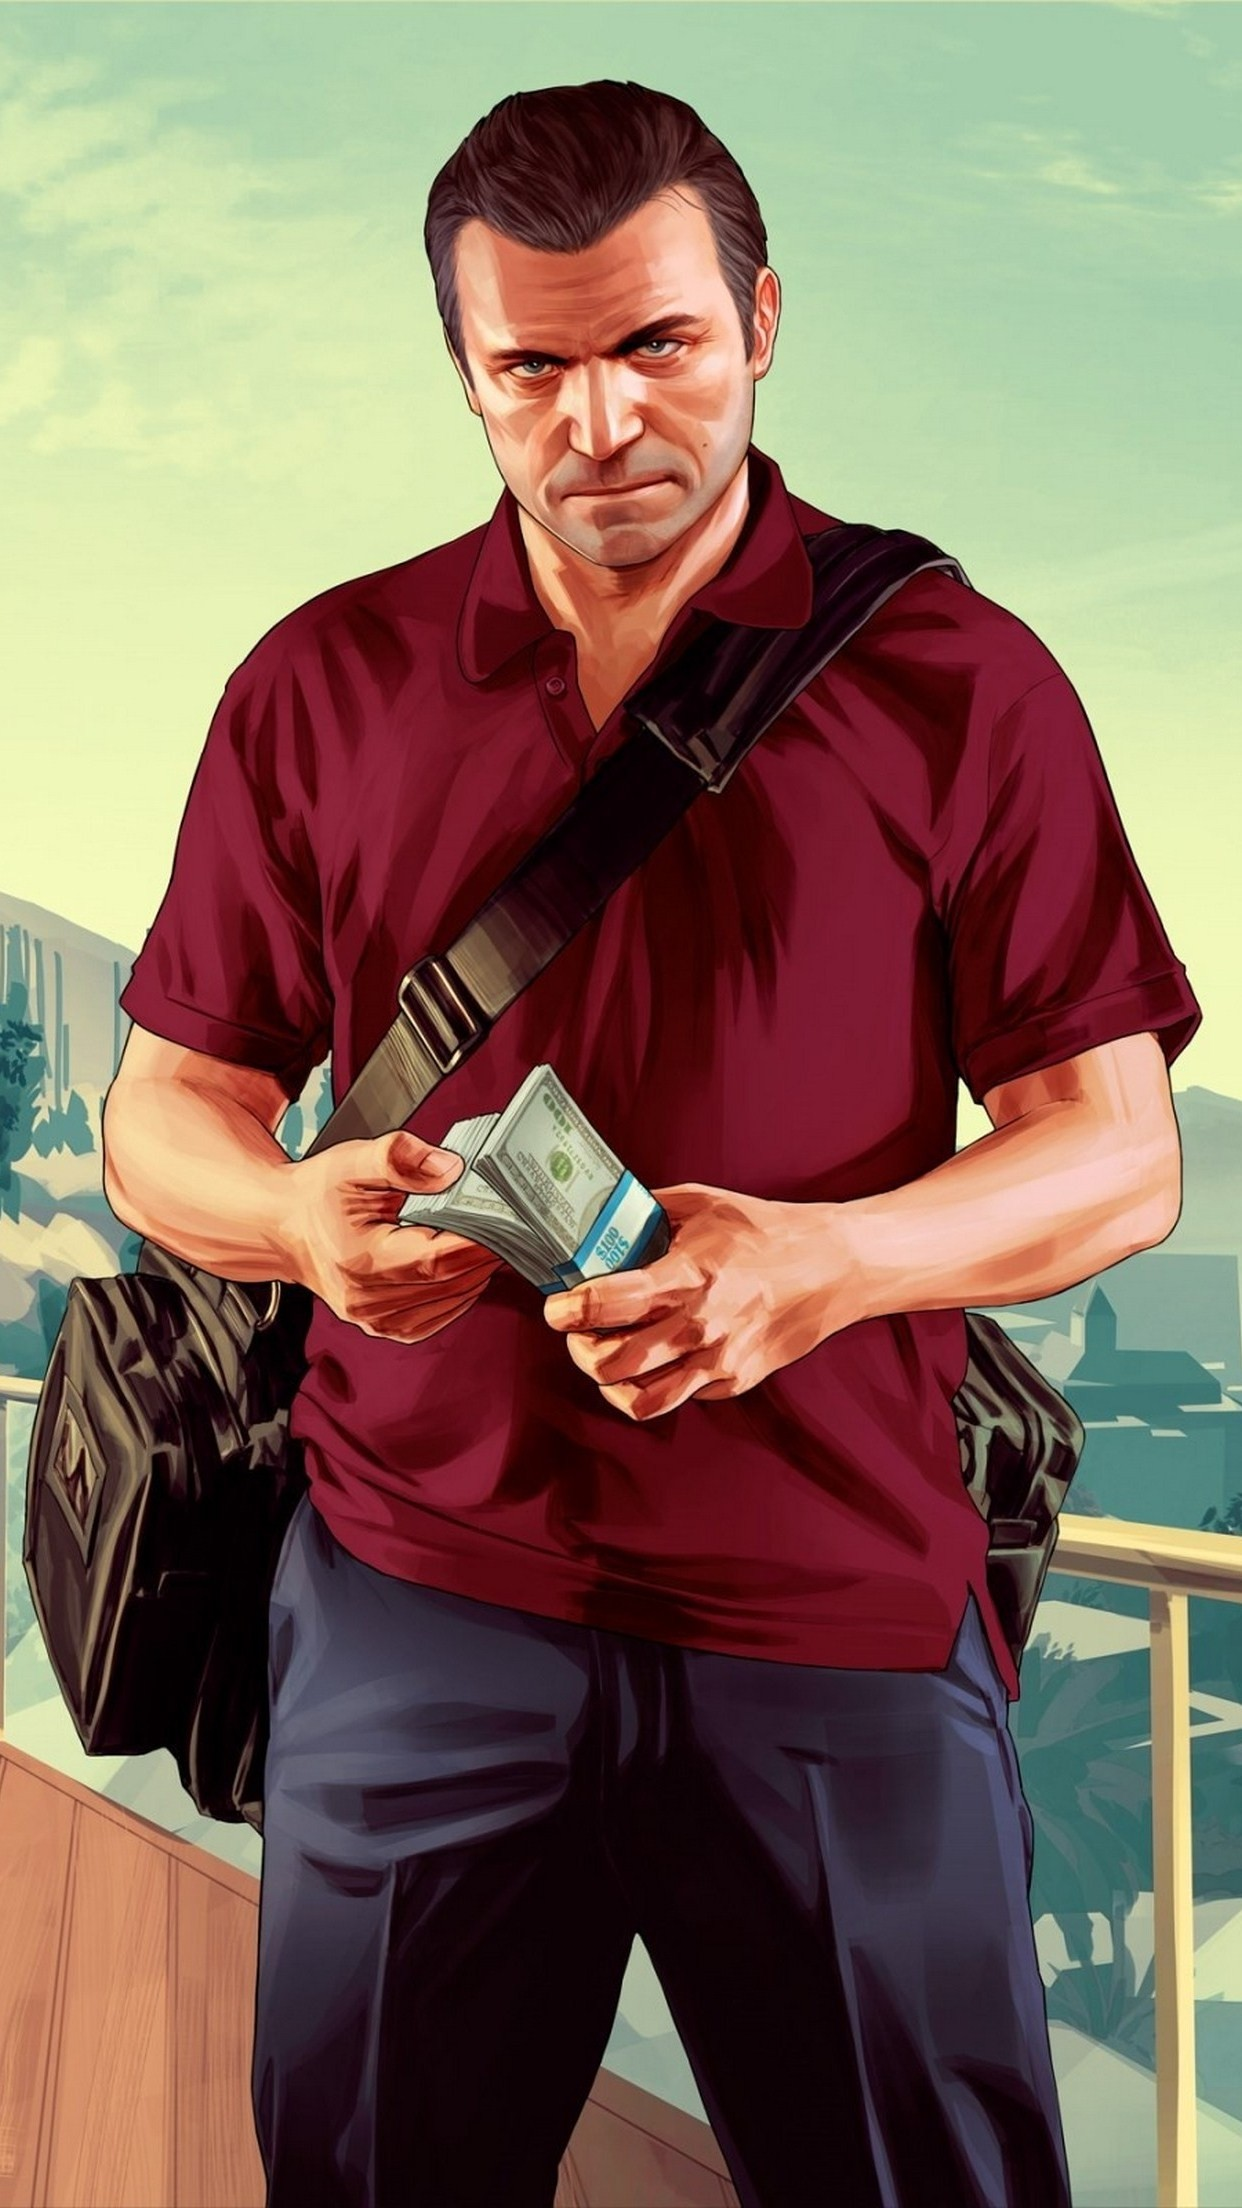 Gta 5 Iphone Wallpaper 75 Images